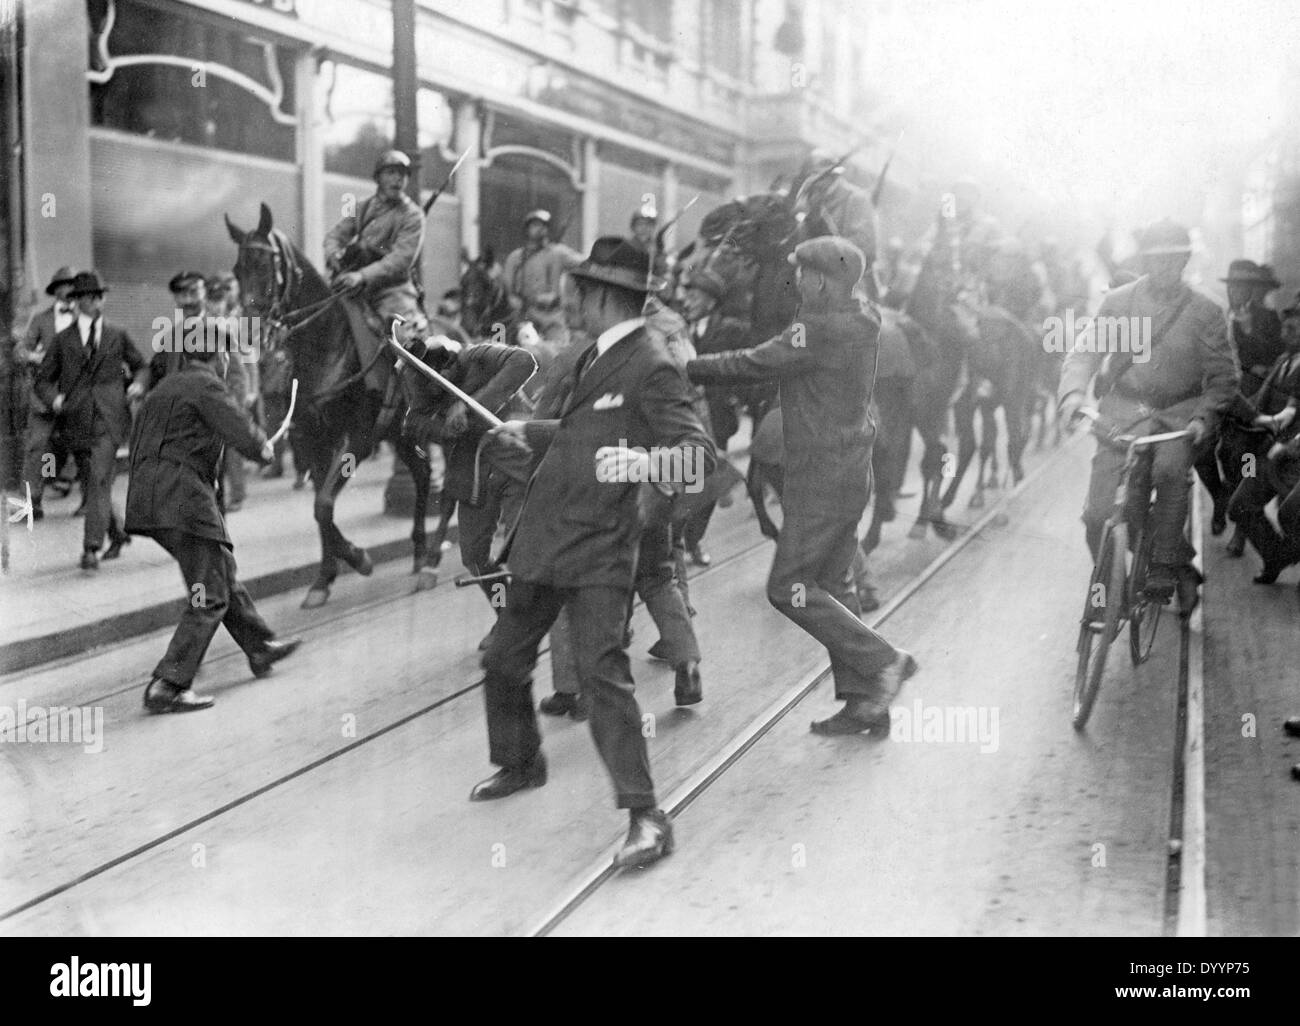 French cavalrymen intervene between separatists and their opponents, 1923 - Stock Image